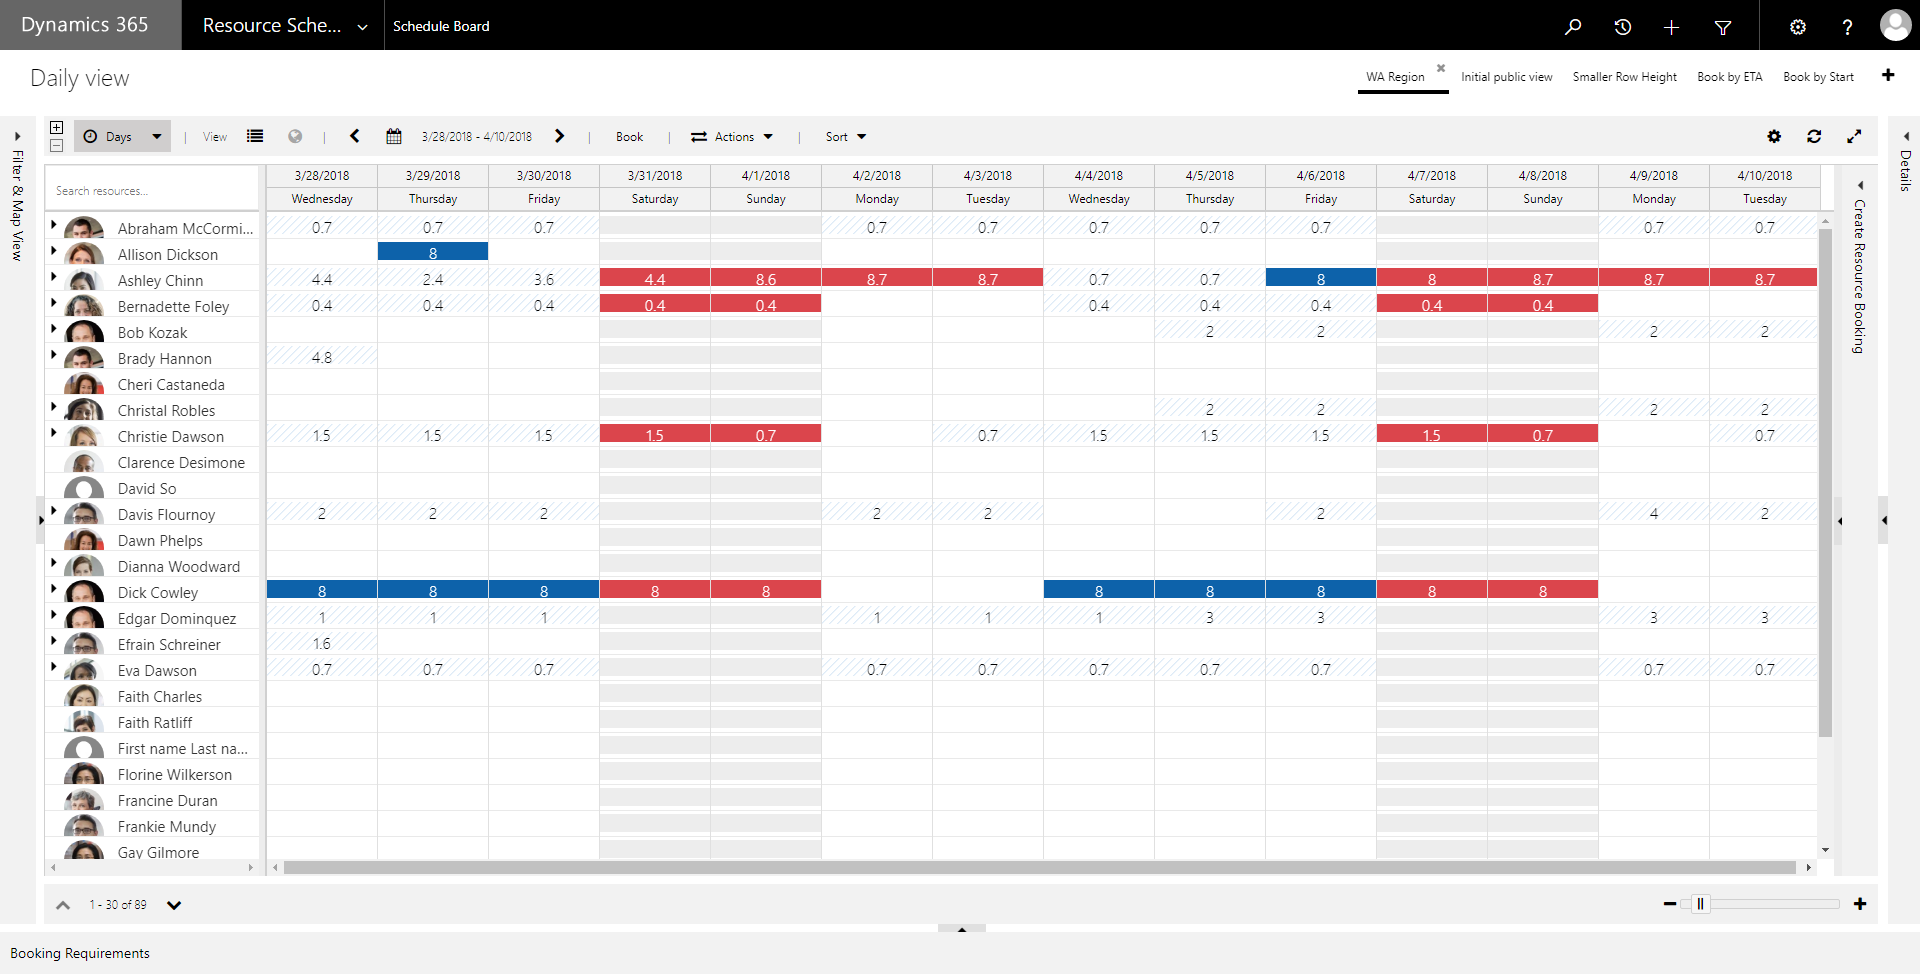 Adjust the height of the resource rows on daily, weekly, or monthly views